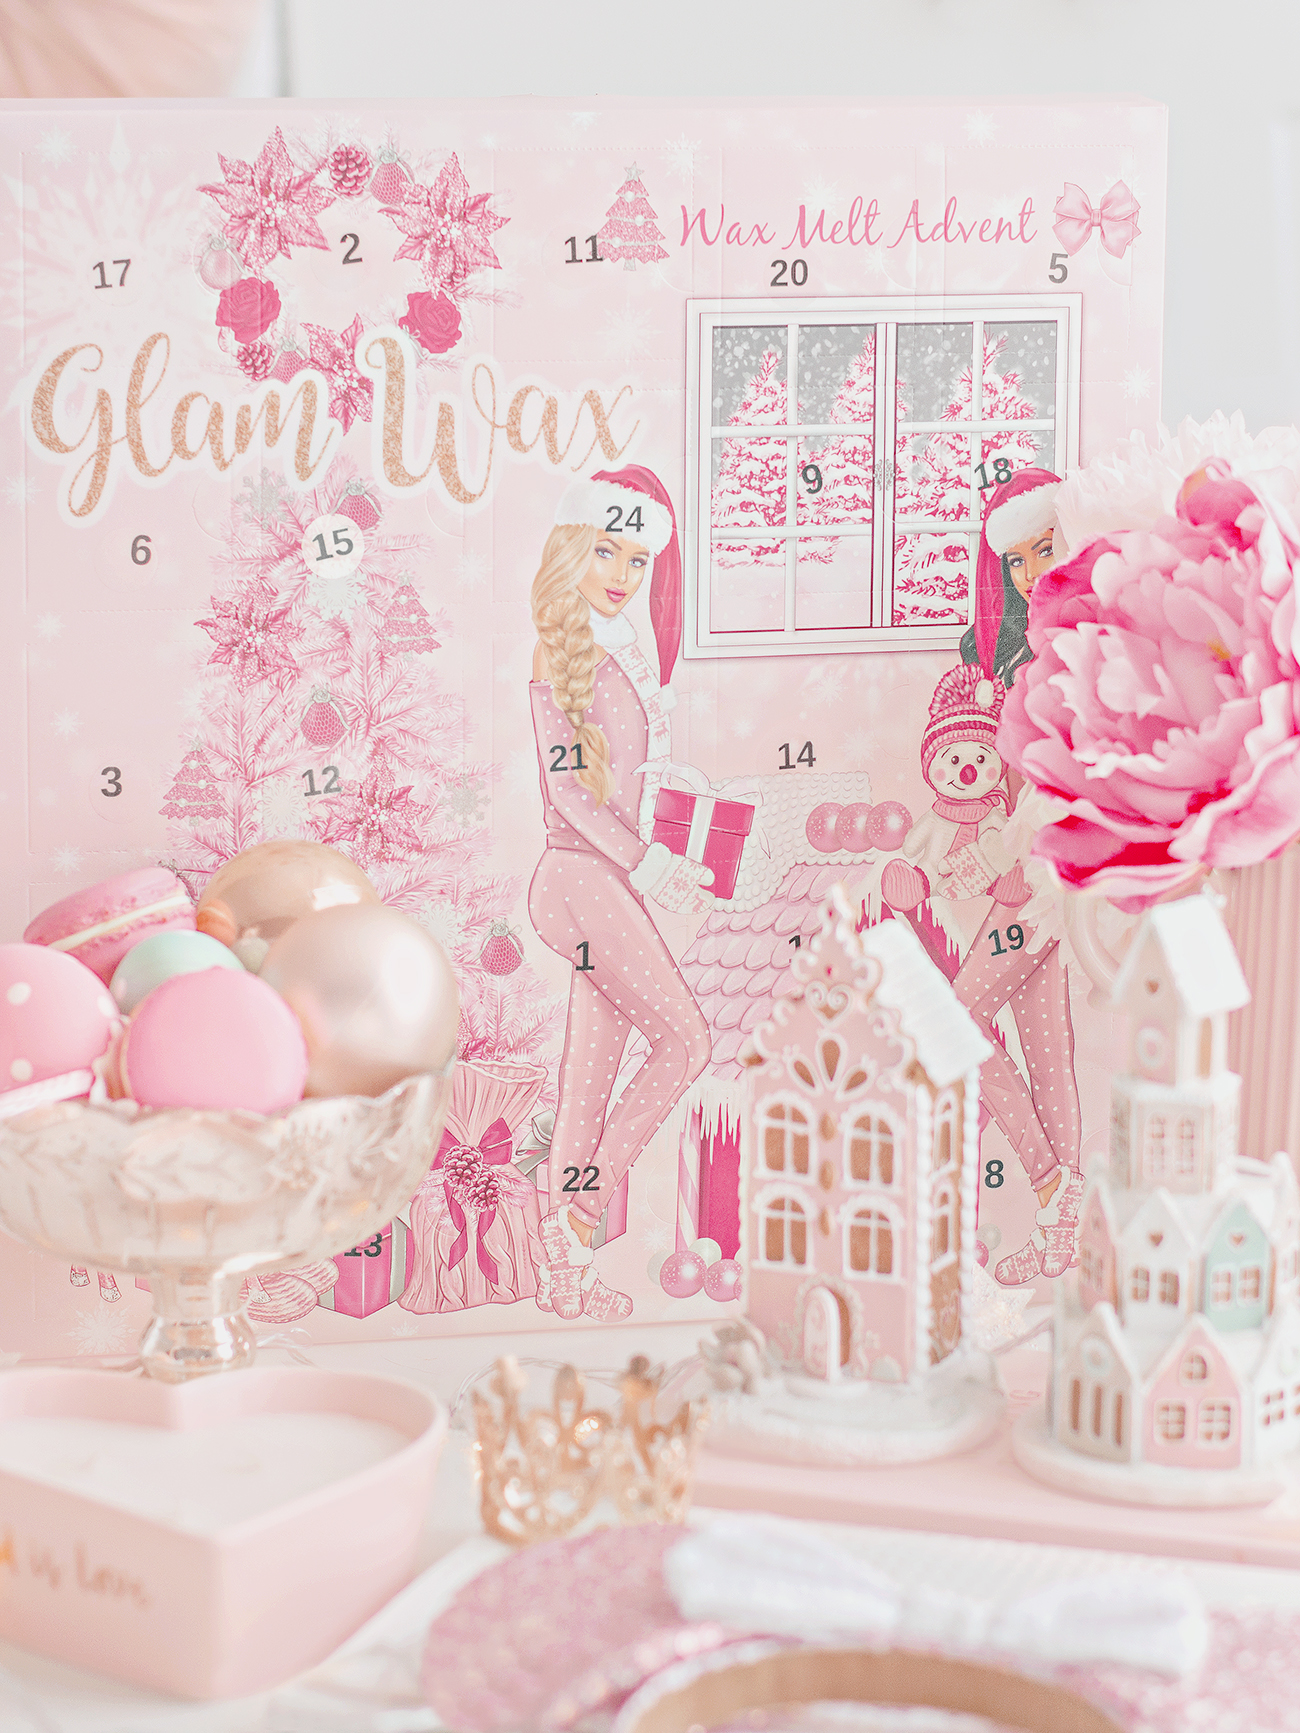 Photo of Glam Wax Advent Calendar with festive decor